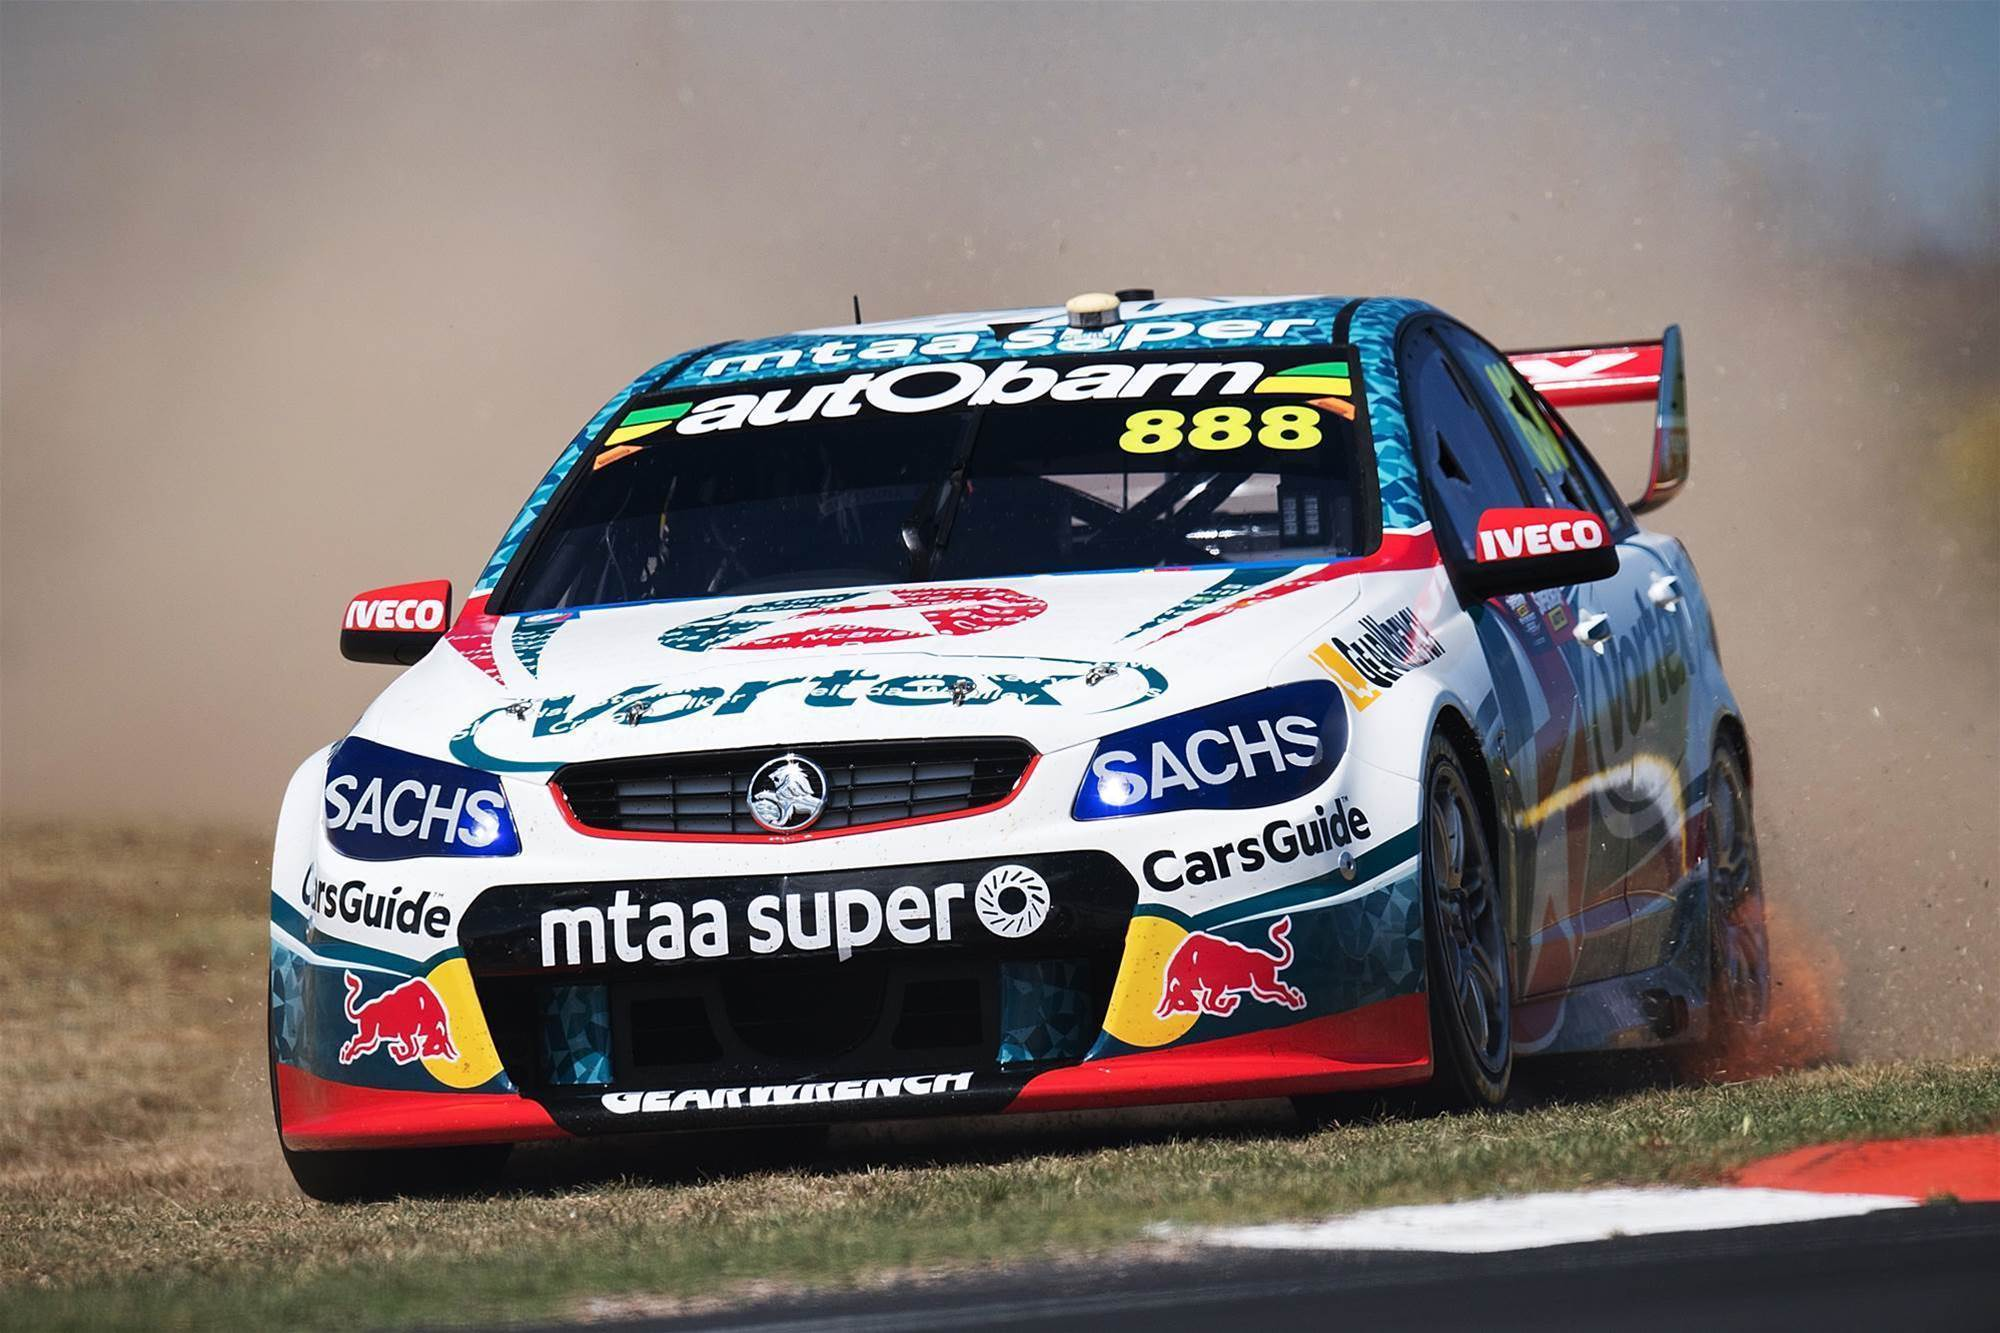 Pic gallery: Bathurst practice and qualifying